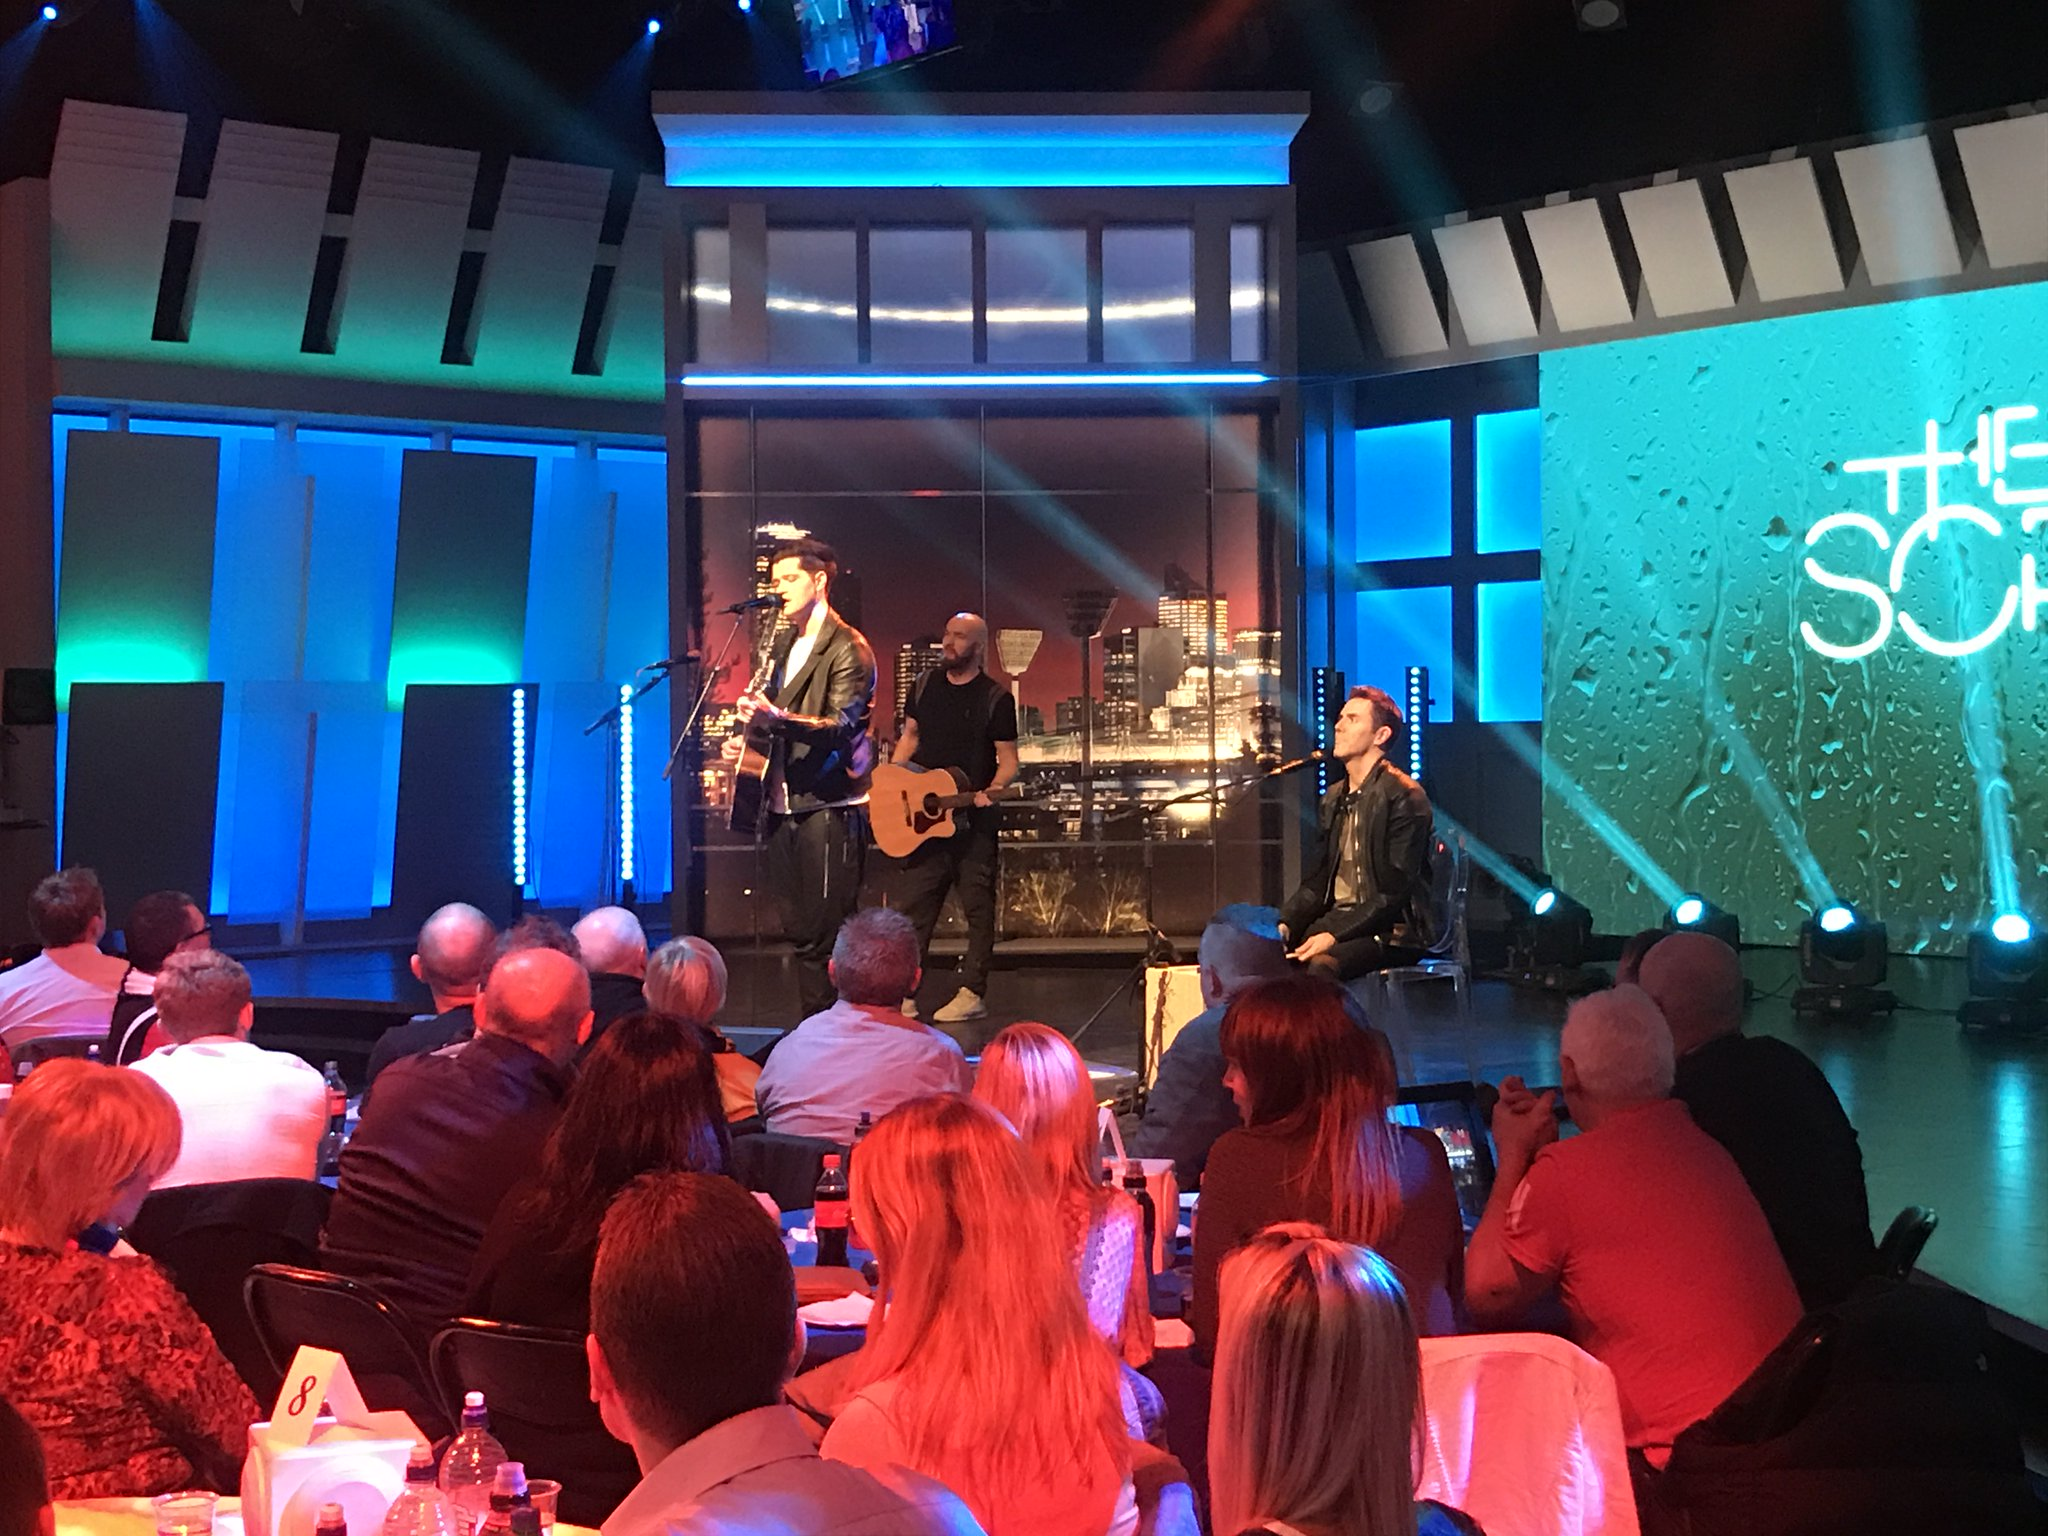 Amazing time performing on @AFLFootyShow in Australia this evening!! #9AFLFootyShow https://t.co/CItT4EsaJN